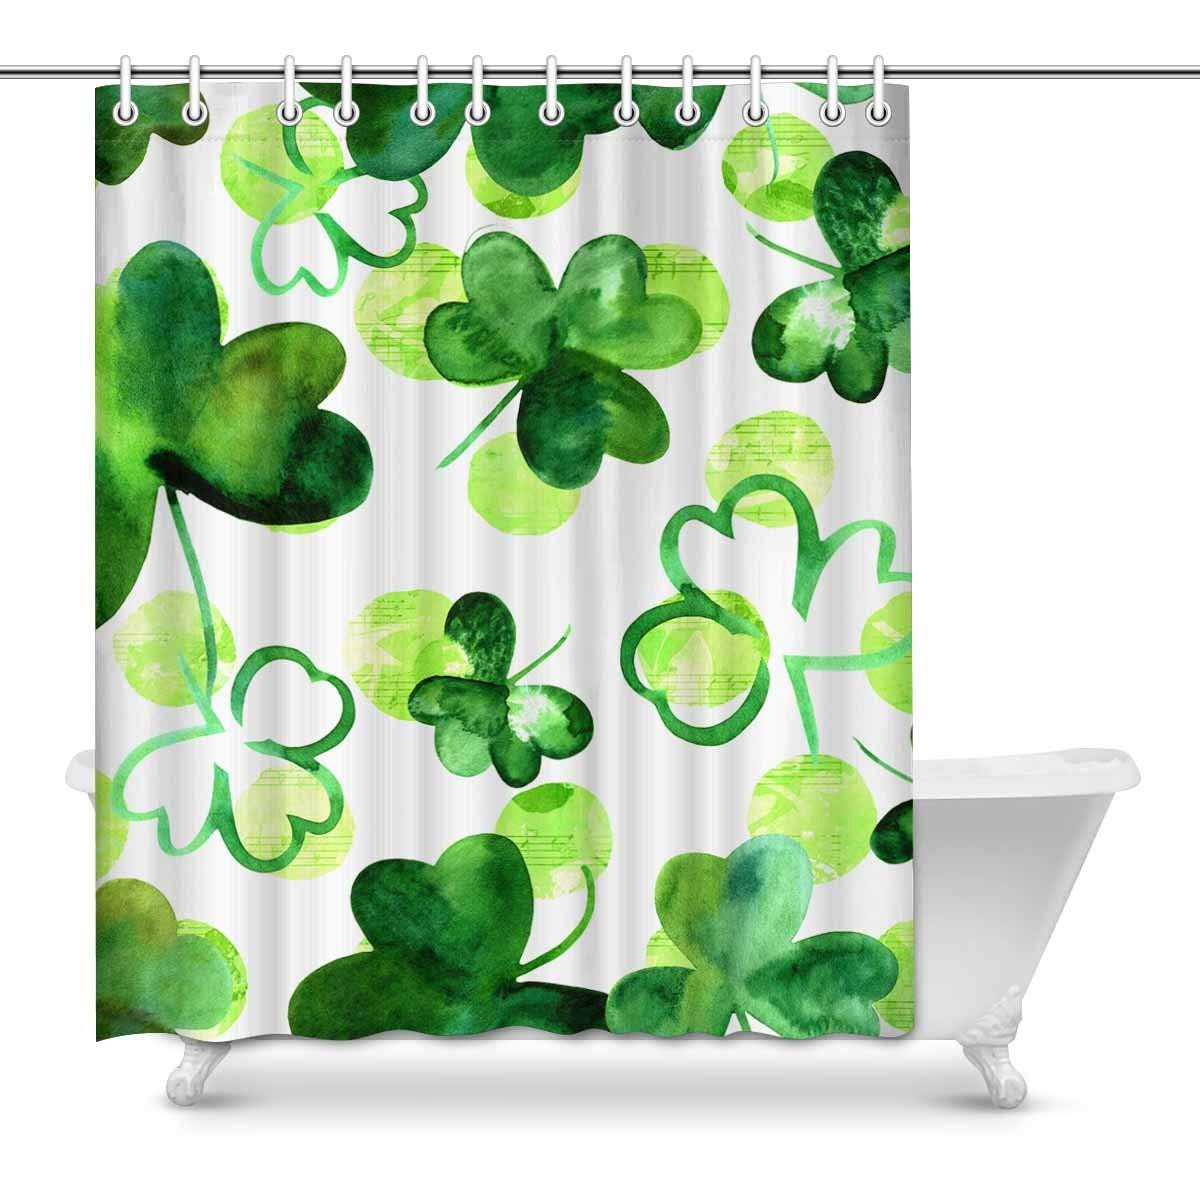 Gckg Watercolour Shamrocks Shower Curtain Green Leaves Clover Polyester Fabric Shower Curtain Bathroom Sets 60x72 Inches